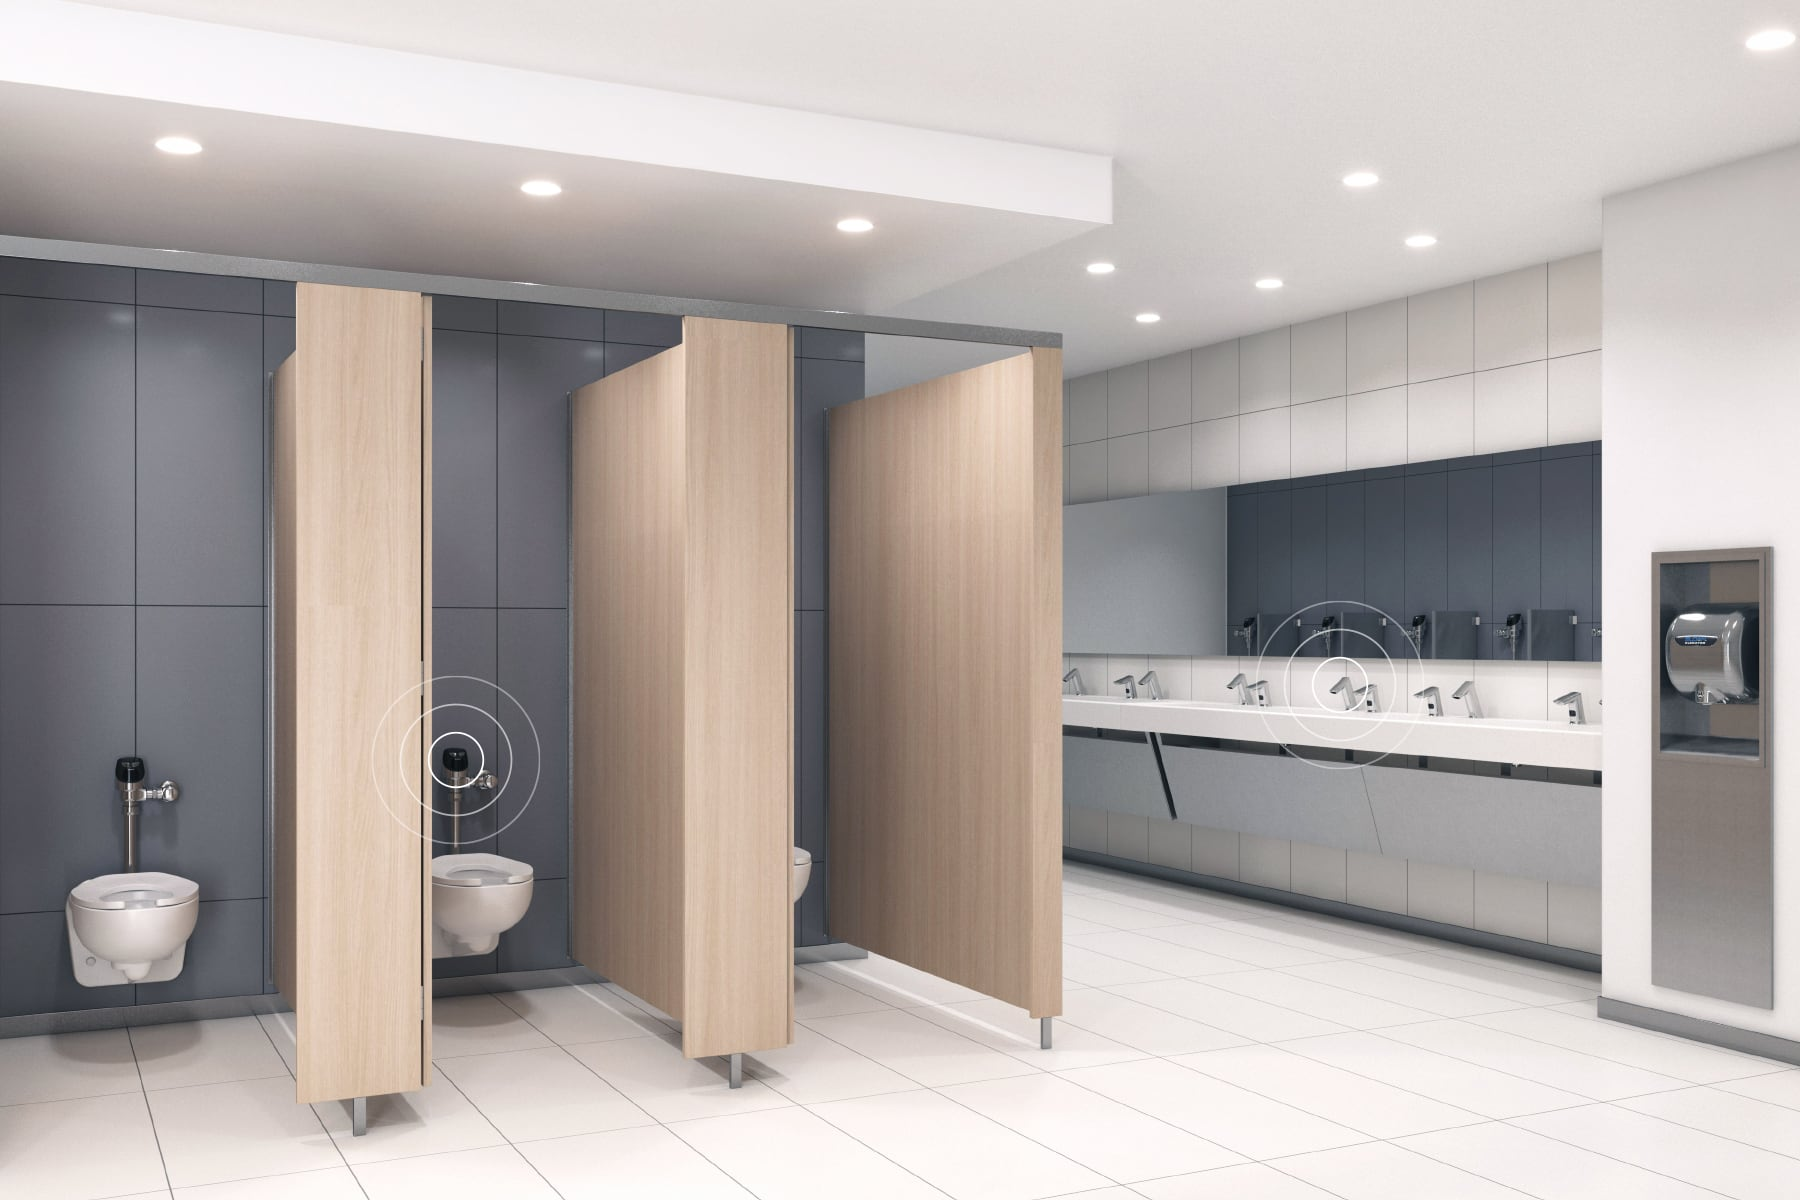 FMJ bluetooth-connected restroom